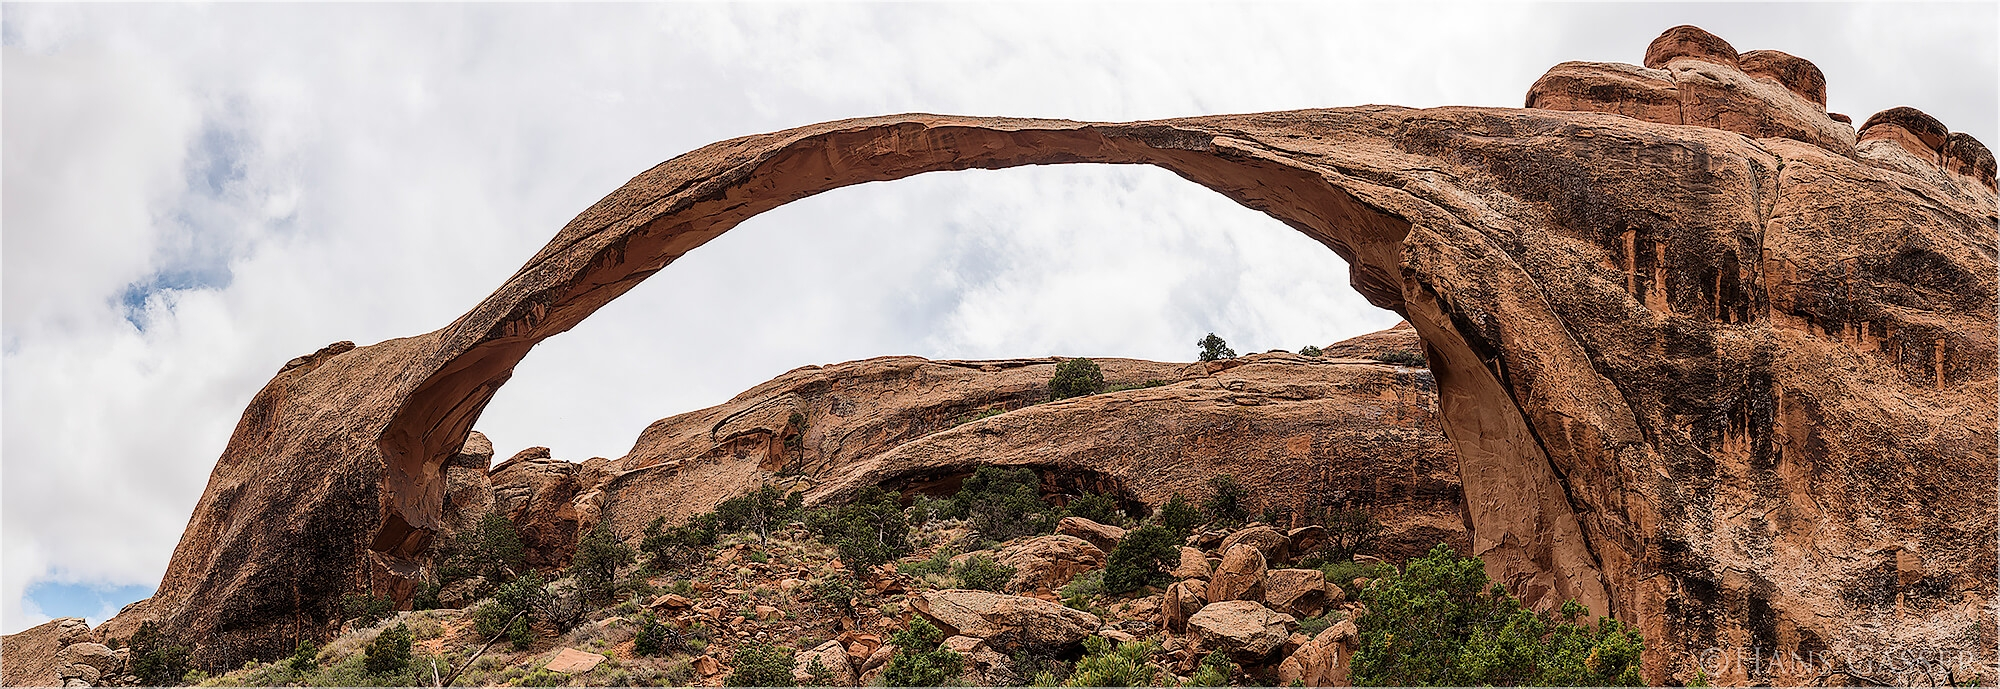 Panoramabild Stone Arch im National Park Utah USA